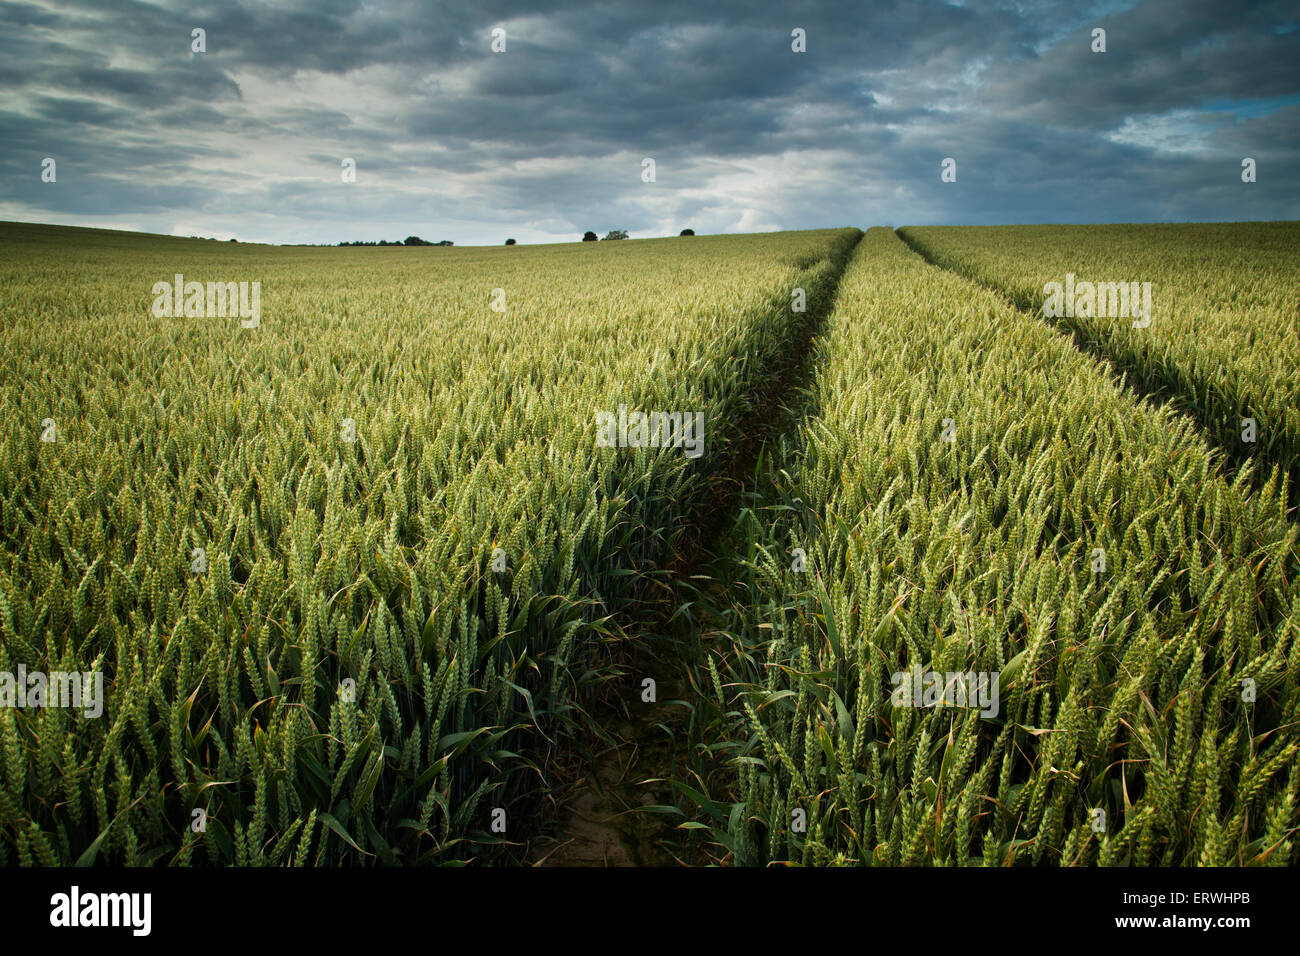 Wheat Field with Tractor Tracks - Stock Image